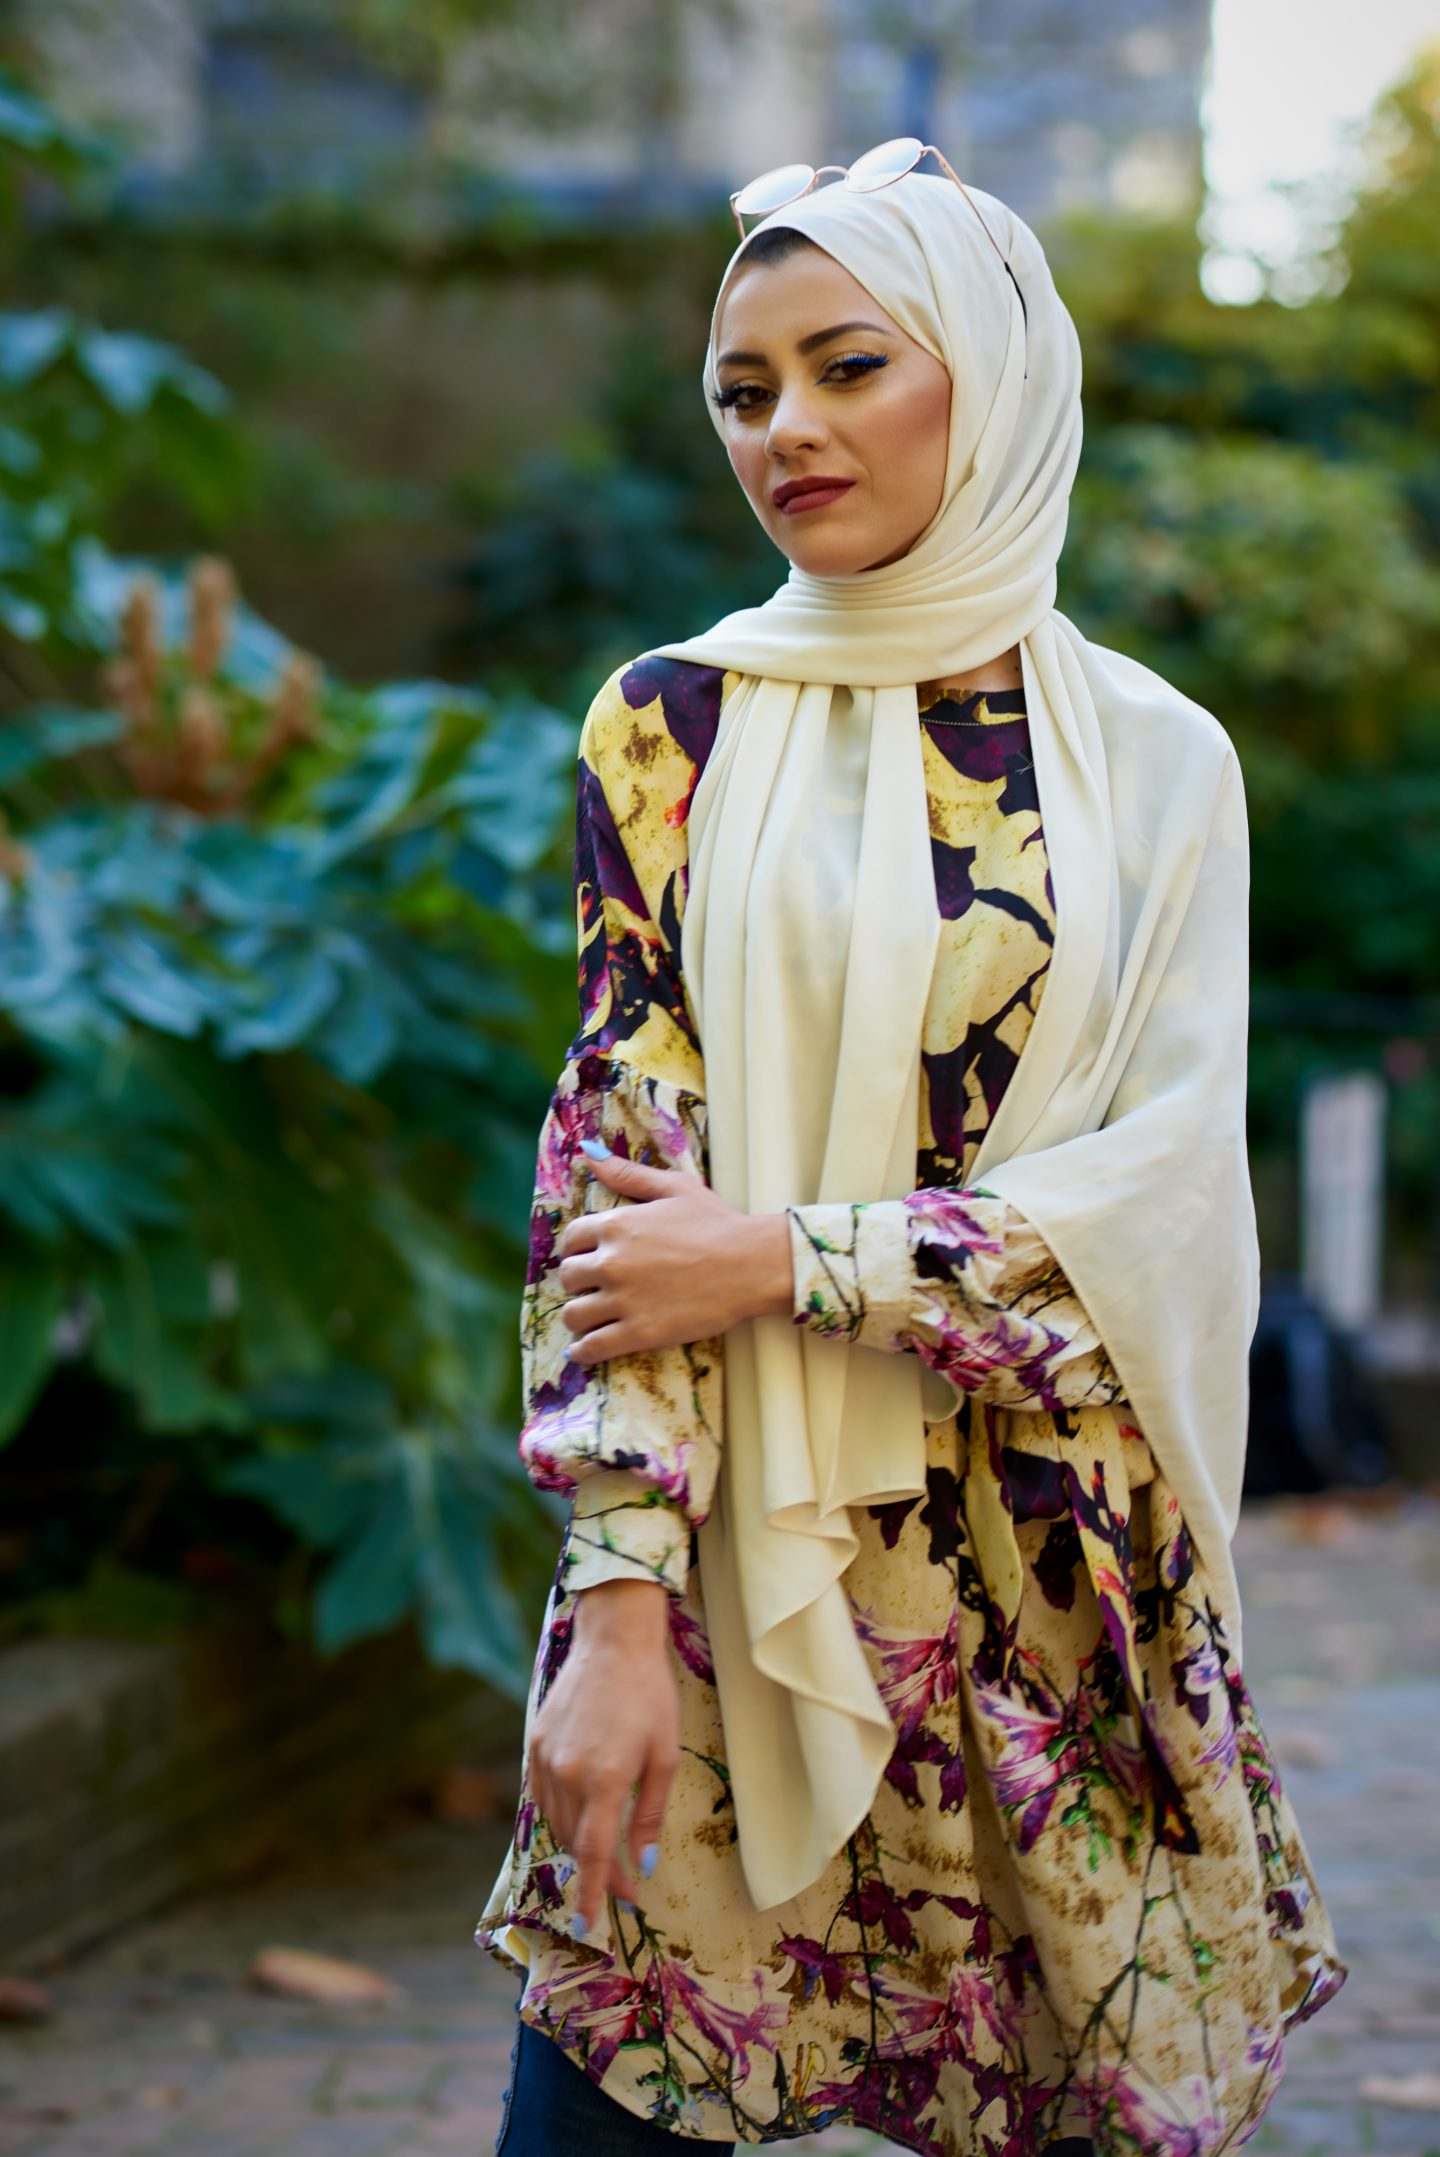 Ezelle: flowered yellow, purple and blue dress with white headscarf.